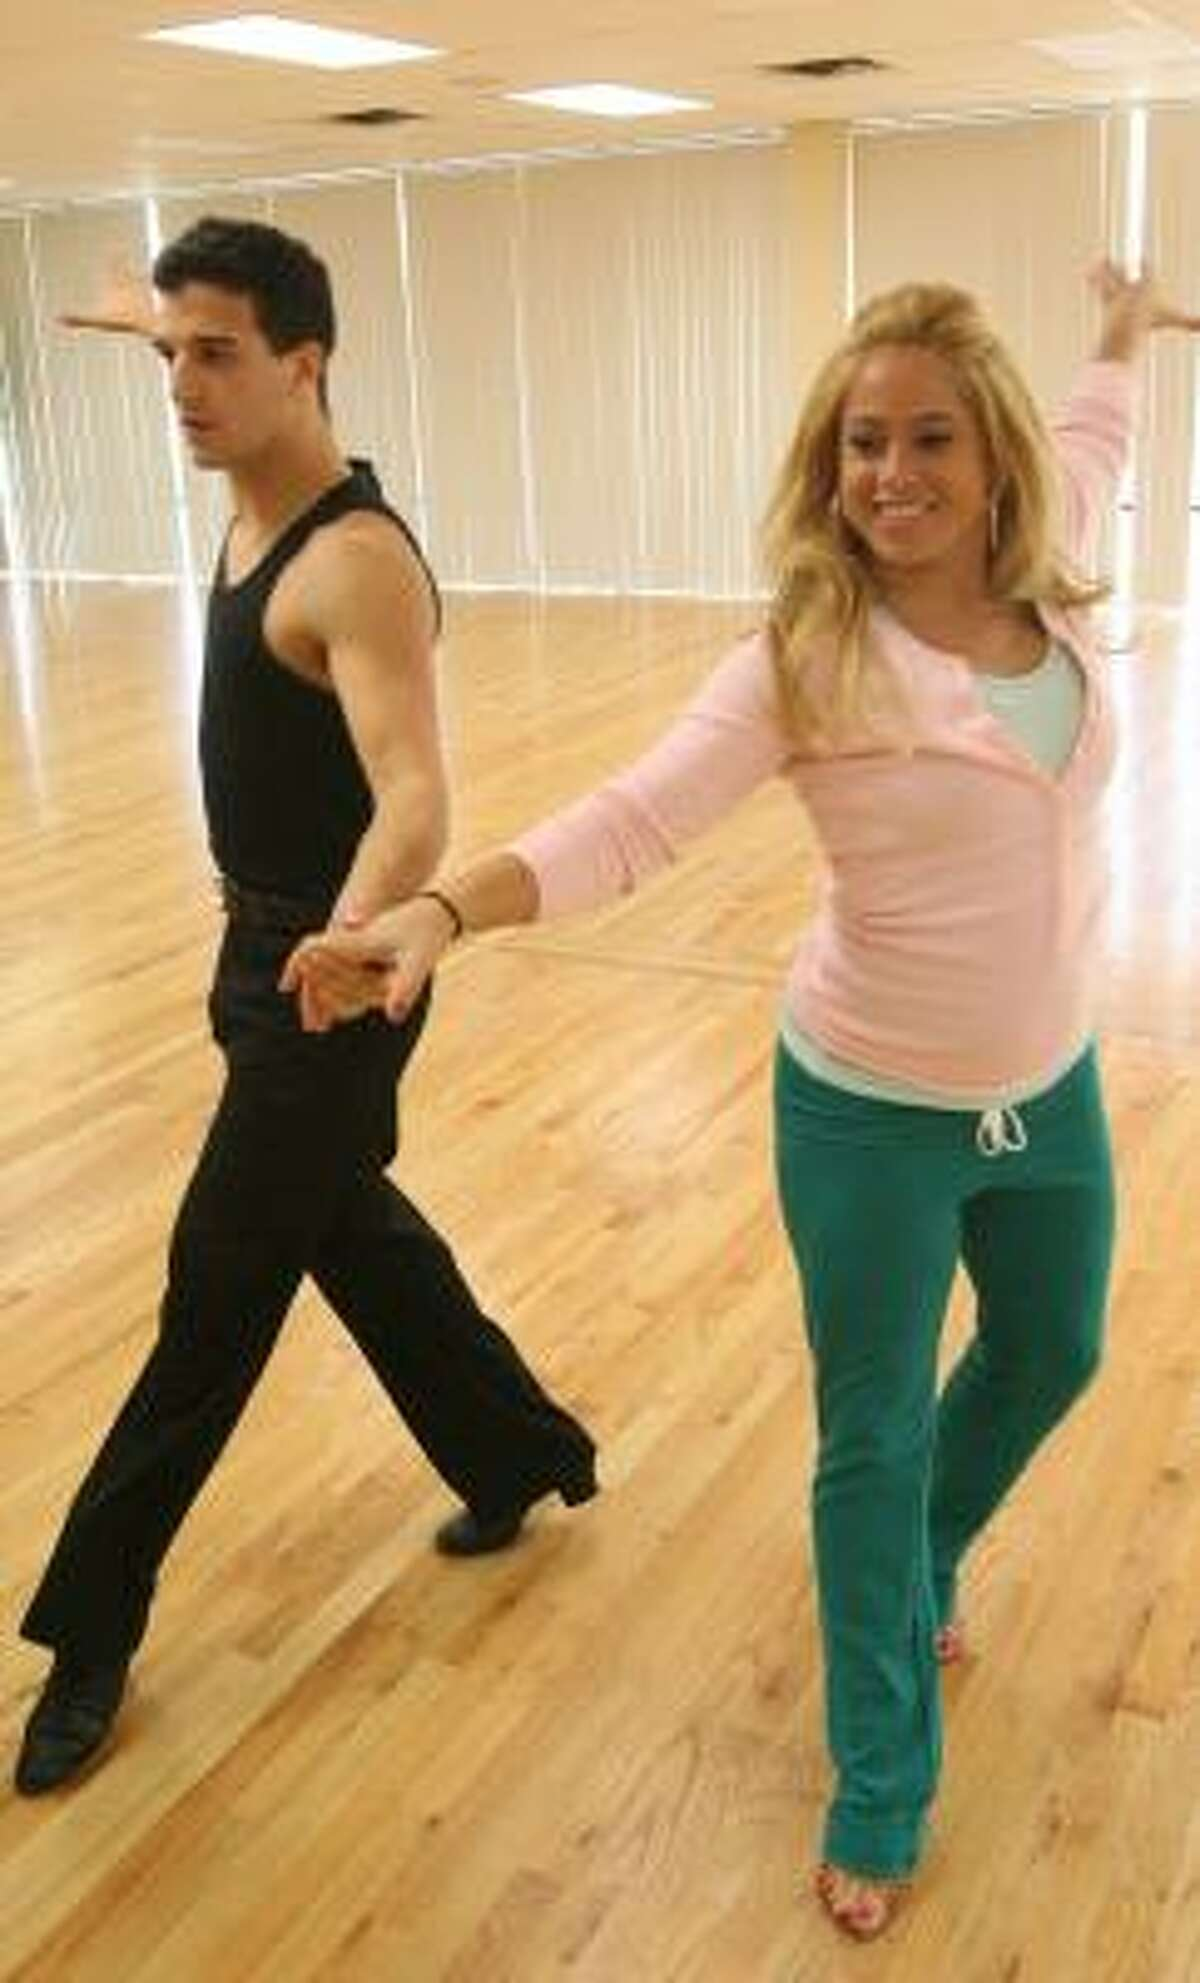 Sabrina Bryan of Cheetah Girls fame and dance pro Mark Ballas demonstrate their cha-cha skills at King's Dancing Centre in Bellaire earlier this week. They were careful not to give away any of their routine before they compete on Dancing With the Stars, which begins Sept. 24.